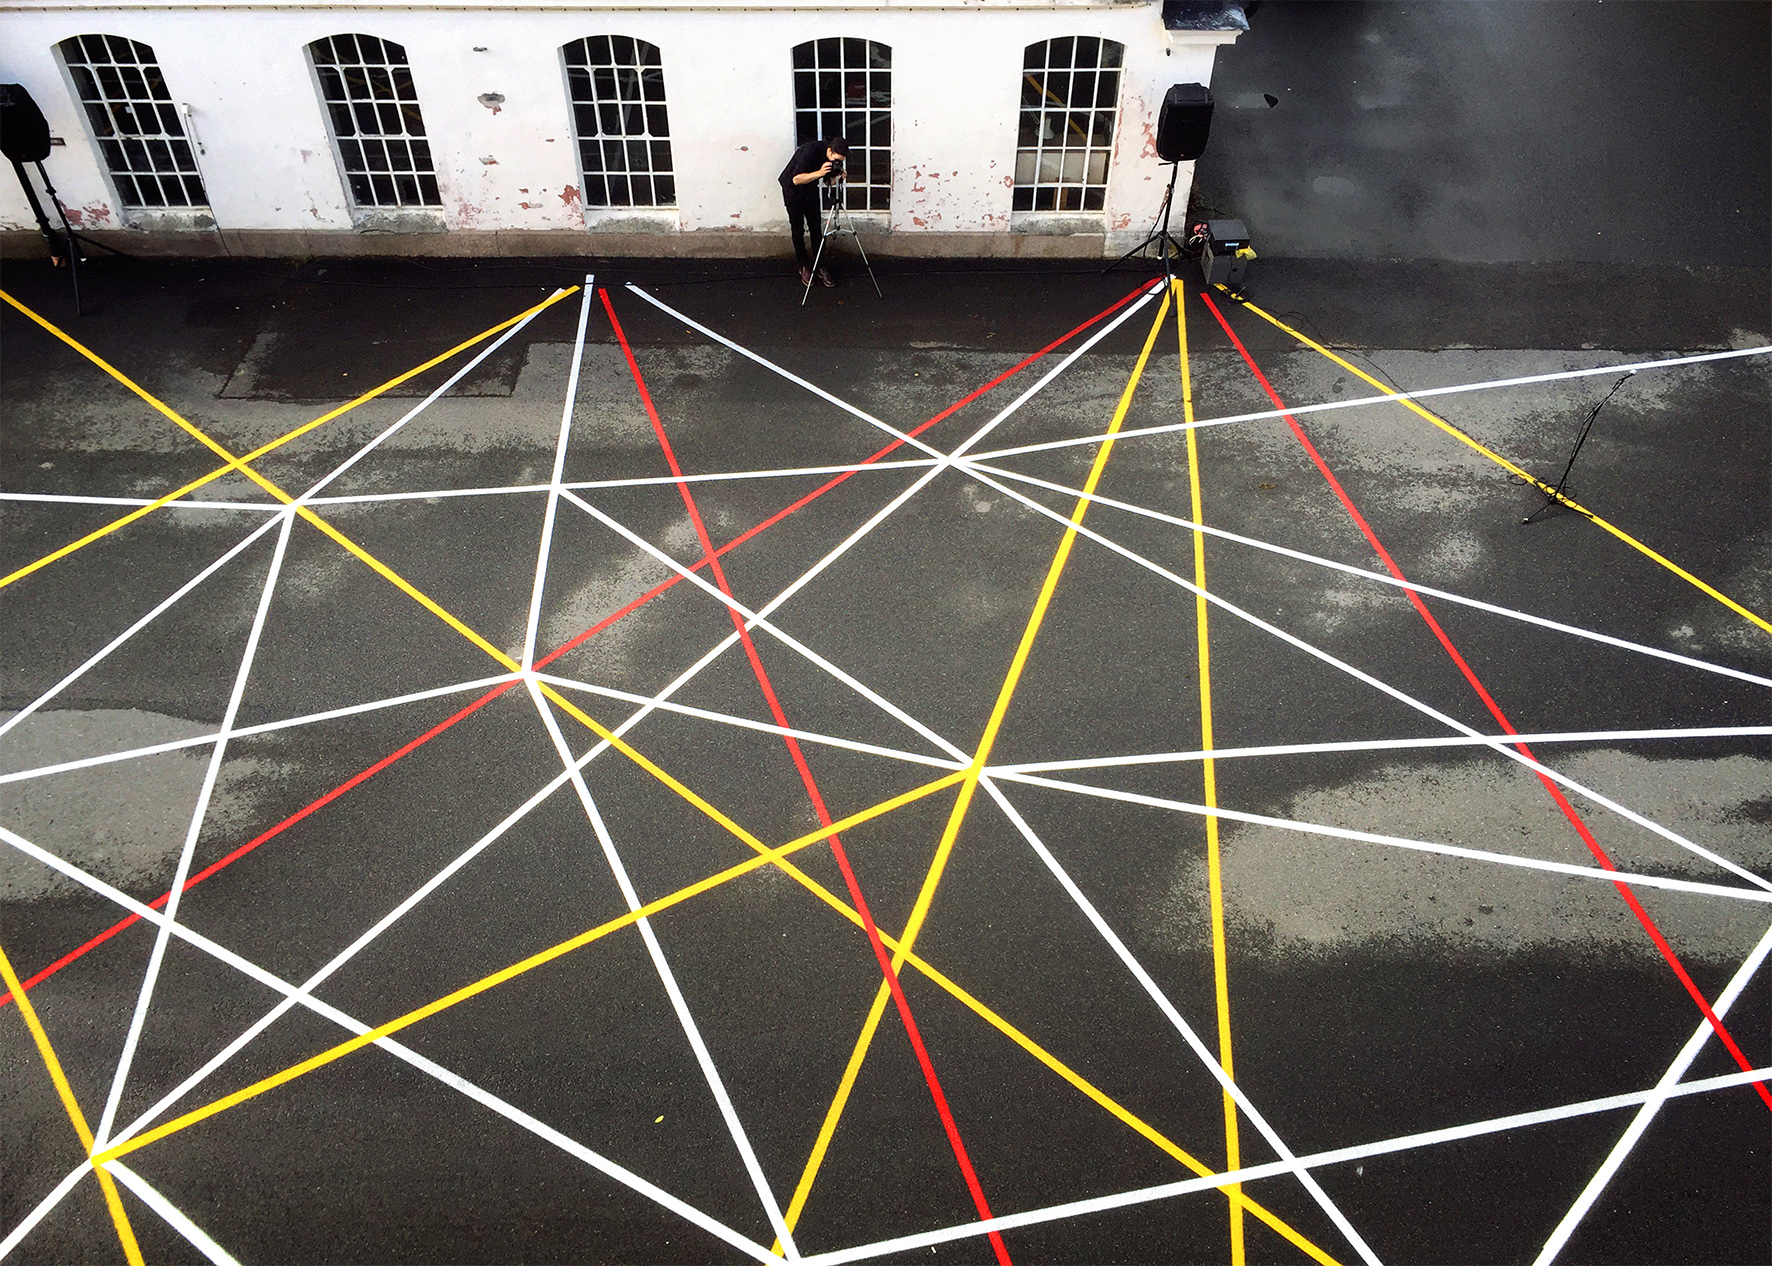 Placemaking as a strategy for activation: the centre of Dikemark, dominated by asphalt, got a new layer of colour which defines an area for collective activities. Photo: Tone Berge